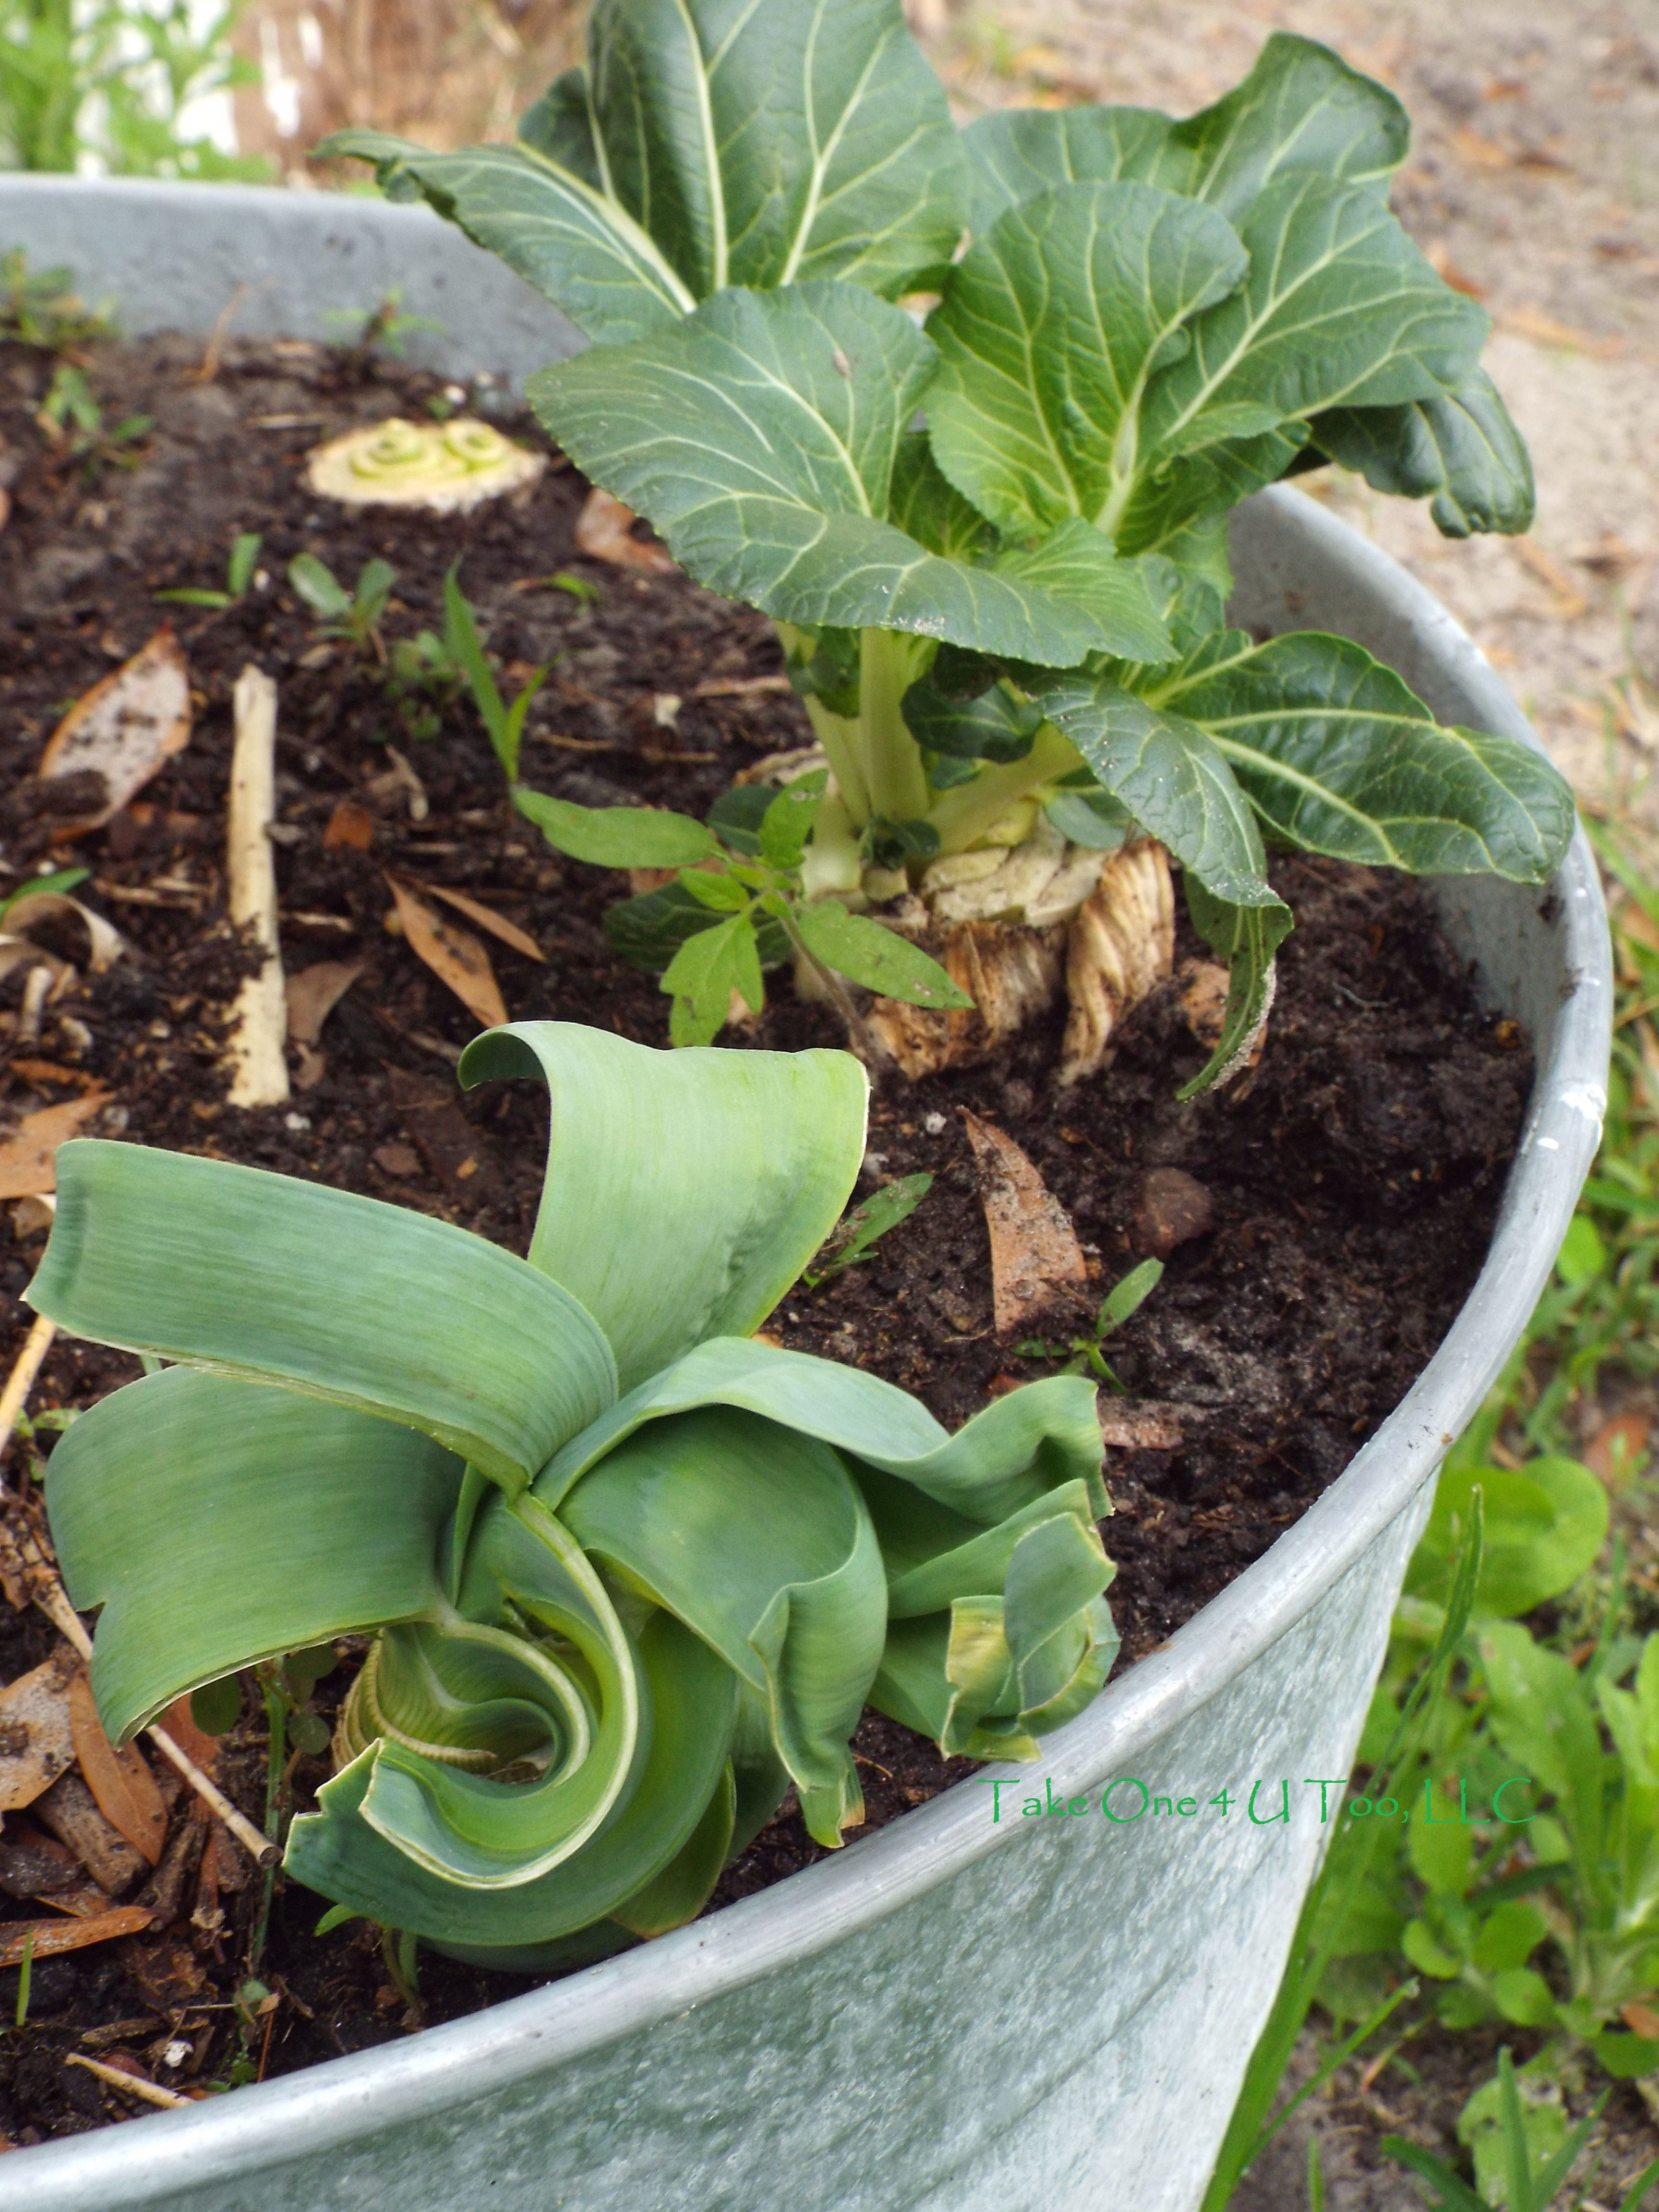 Fresh Veggies. Growing your own food at home is healthier for your body and your wallet.  Growing leeks & bokchoy with discarded ends. Source: Take One 4 U Too, LLC.